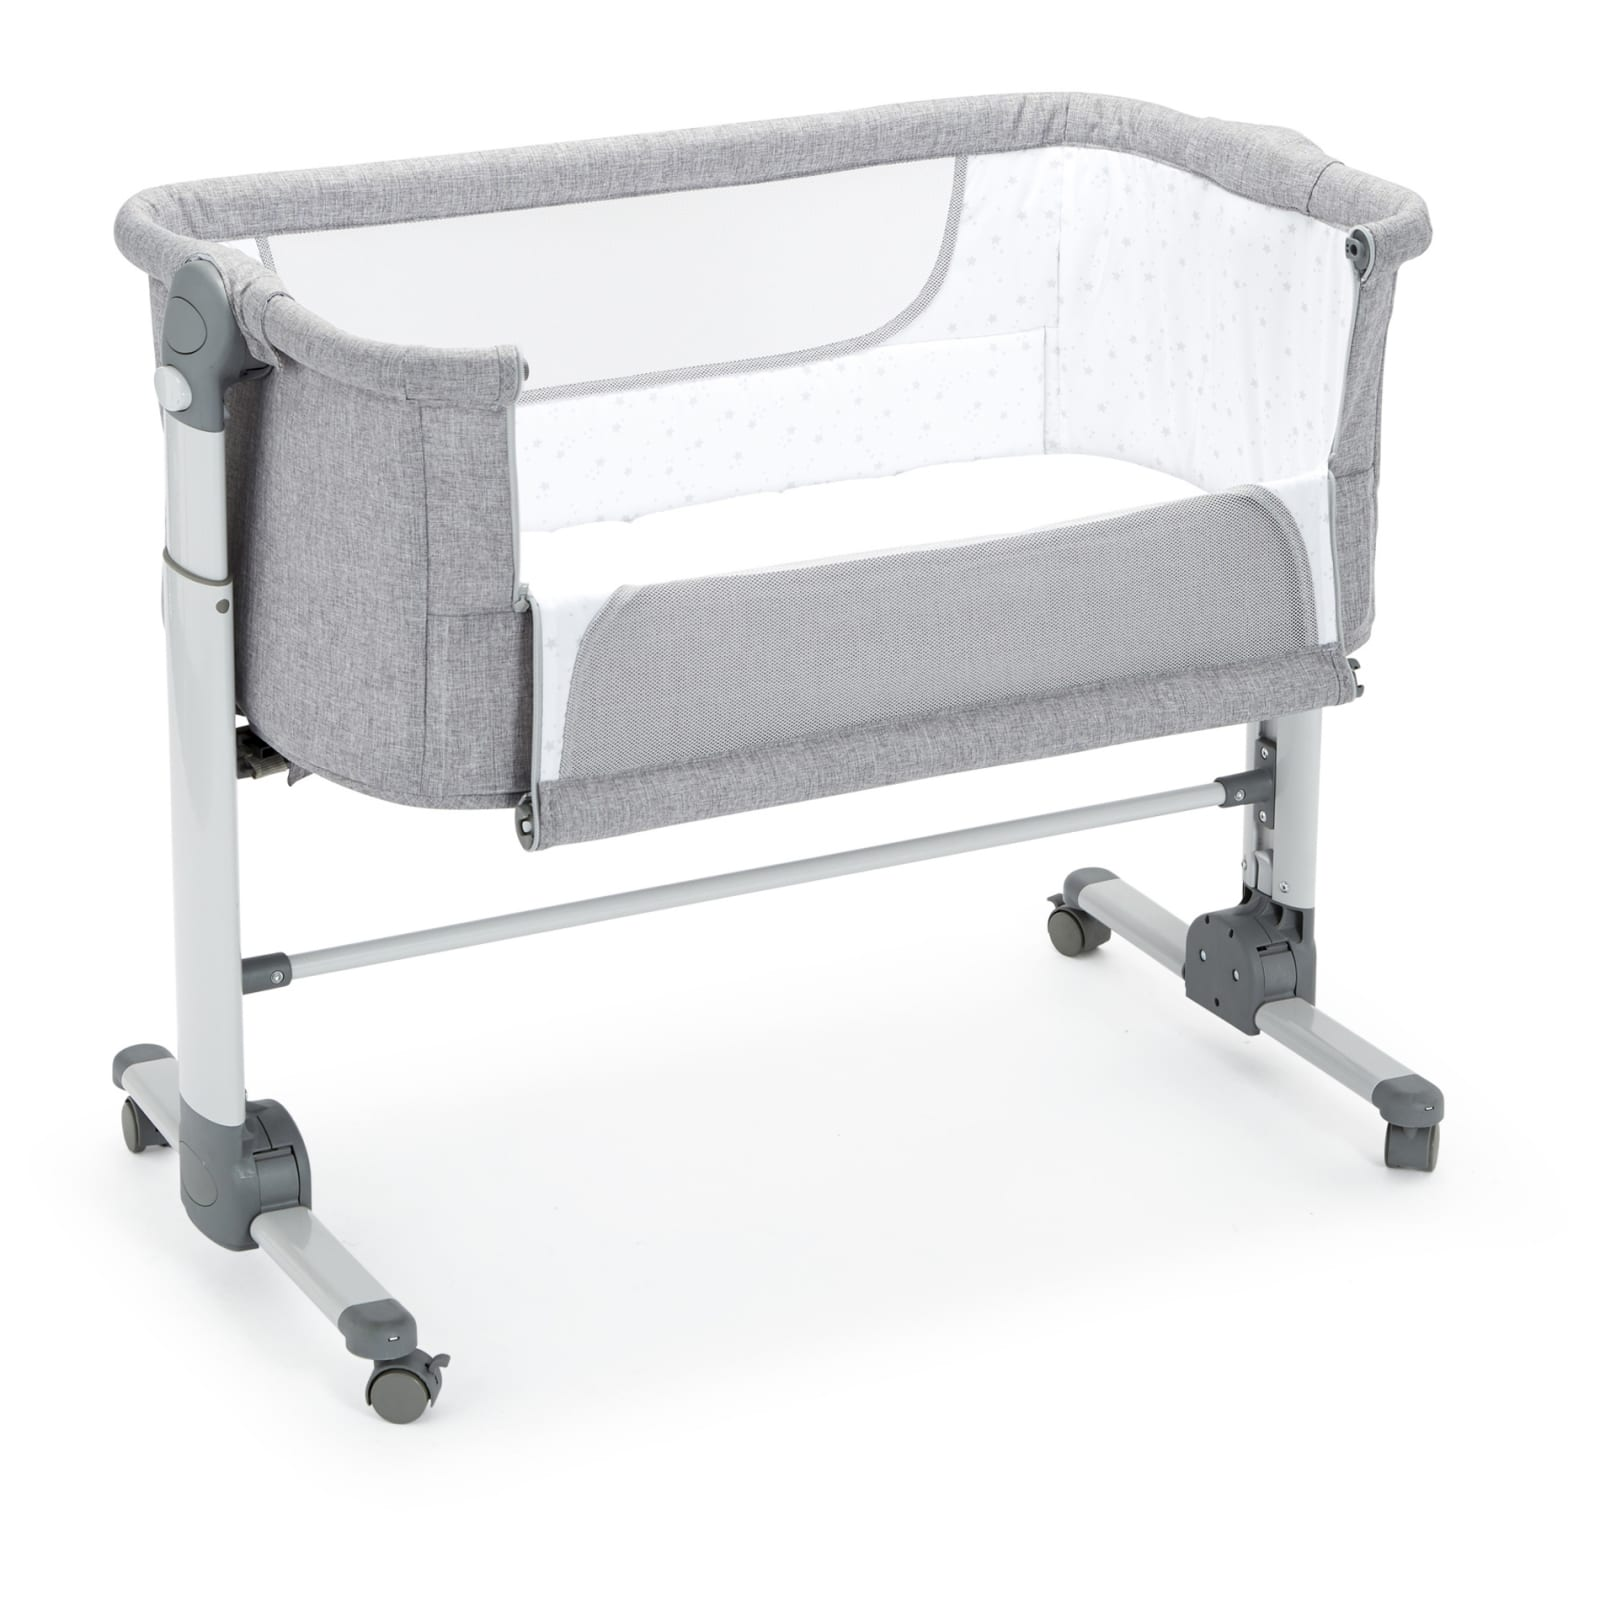 Be By Me – Bedside Crib product image